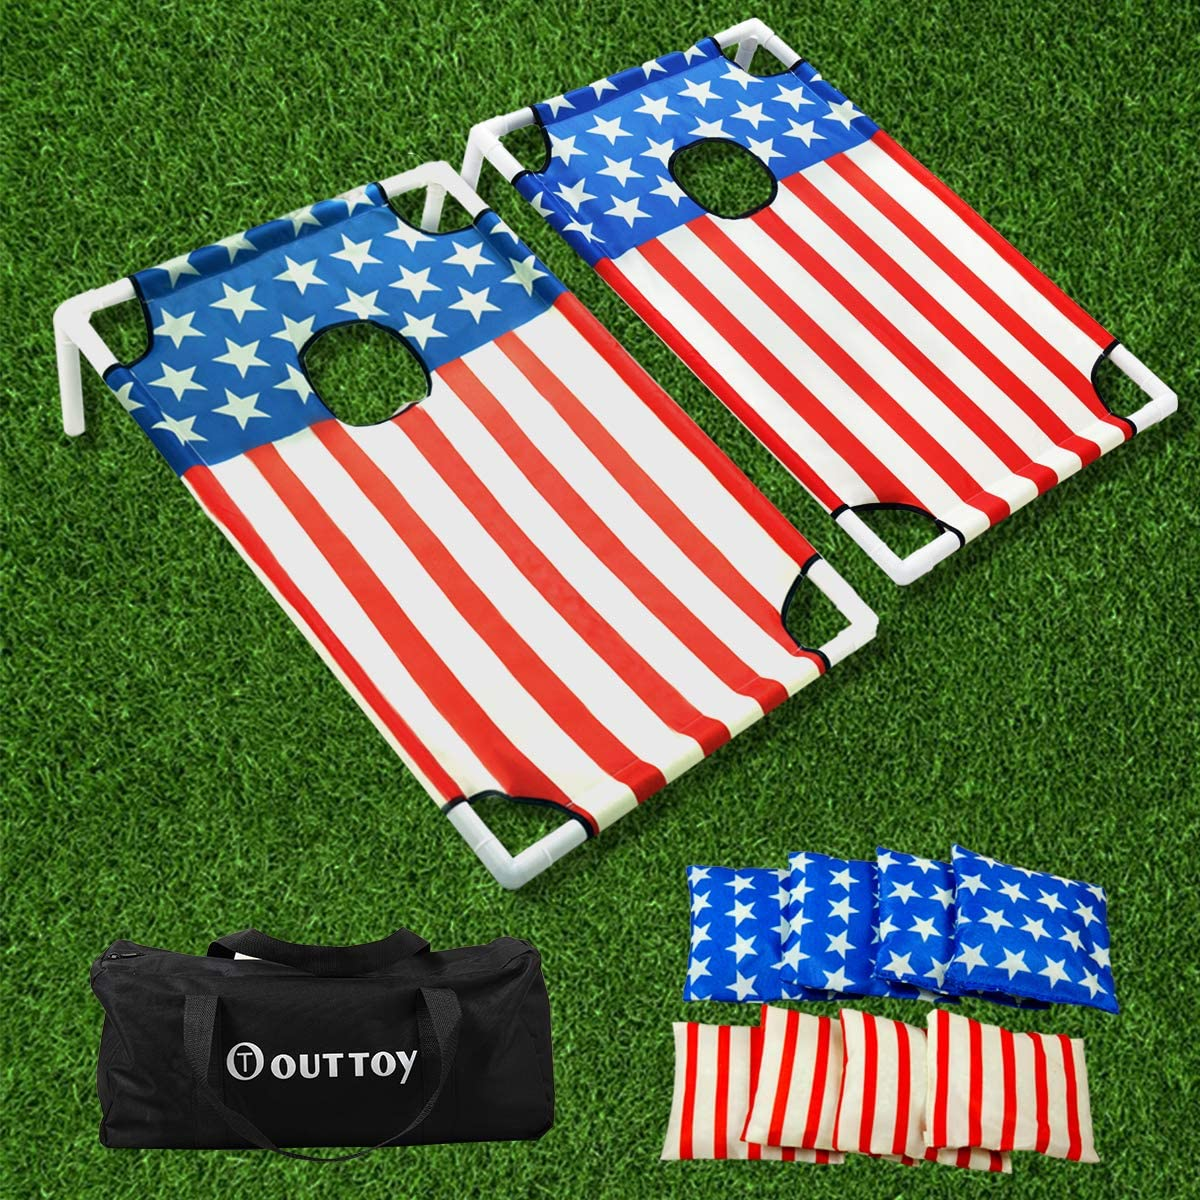 3 x 2FT Portable Collapsible CornHole Toss Game Set With 8 Cornhole Bean Bags